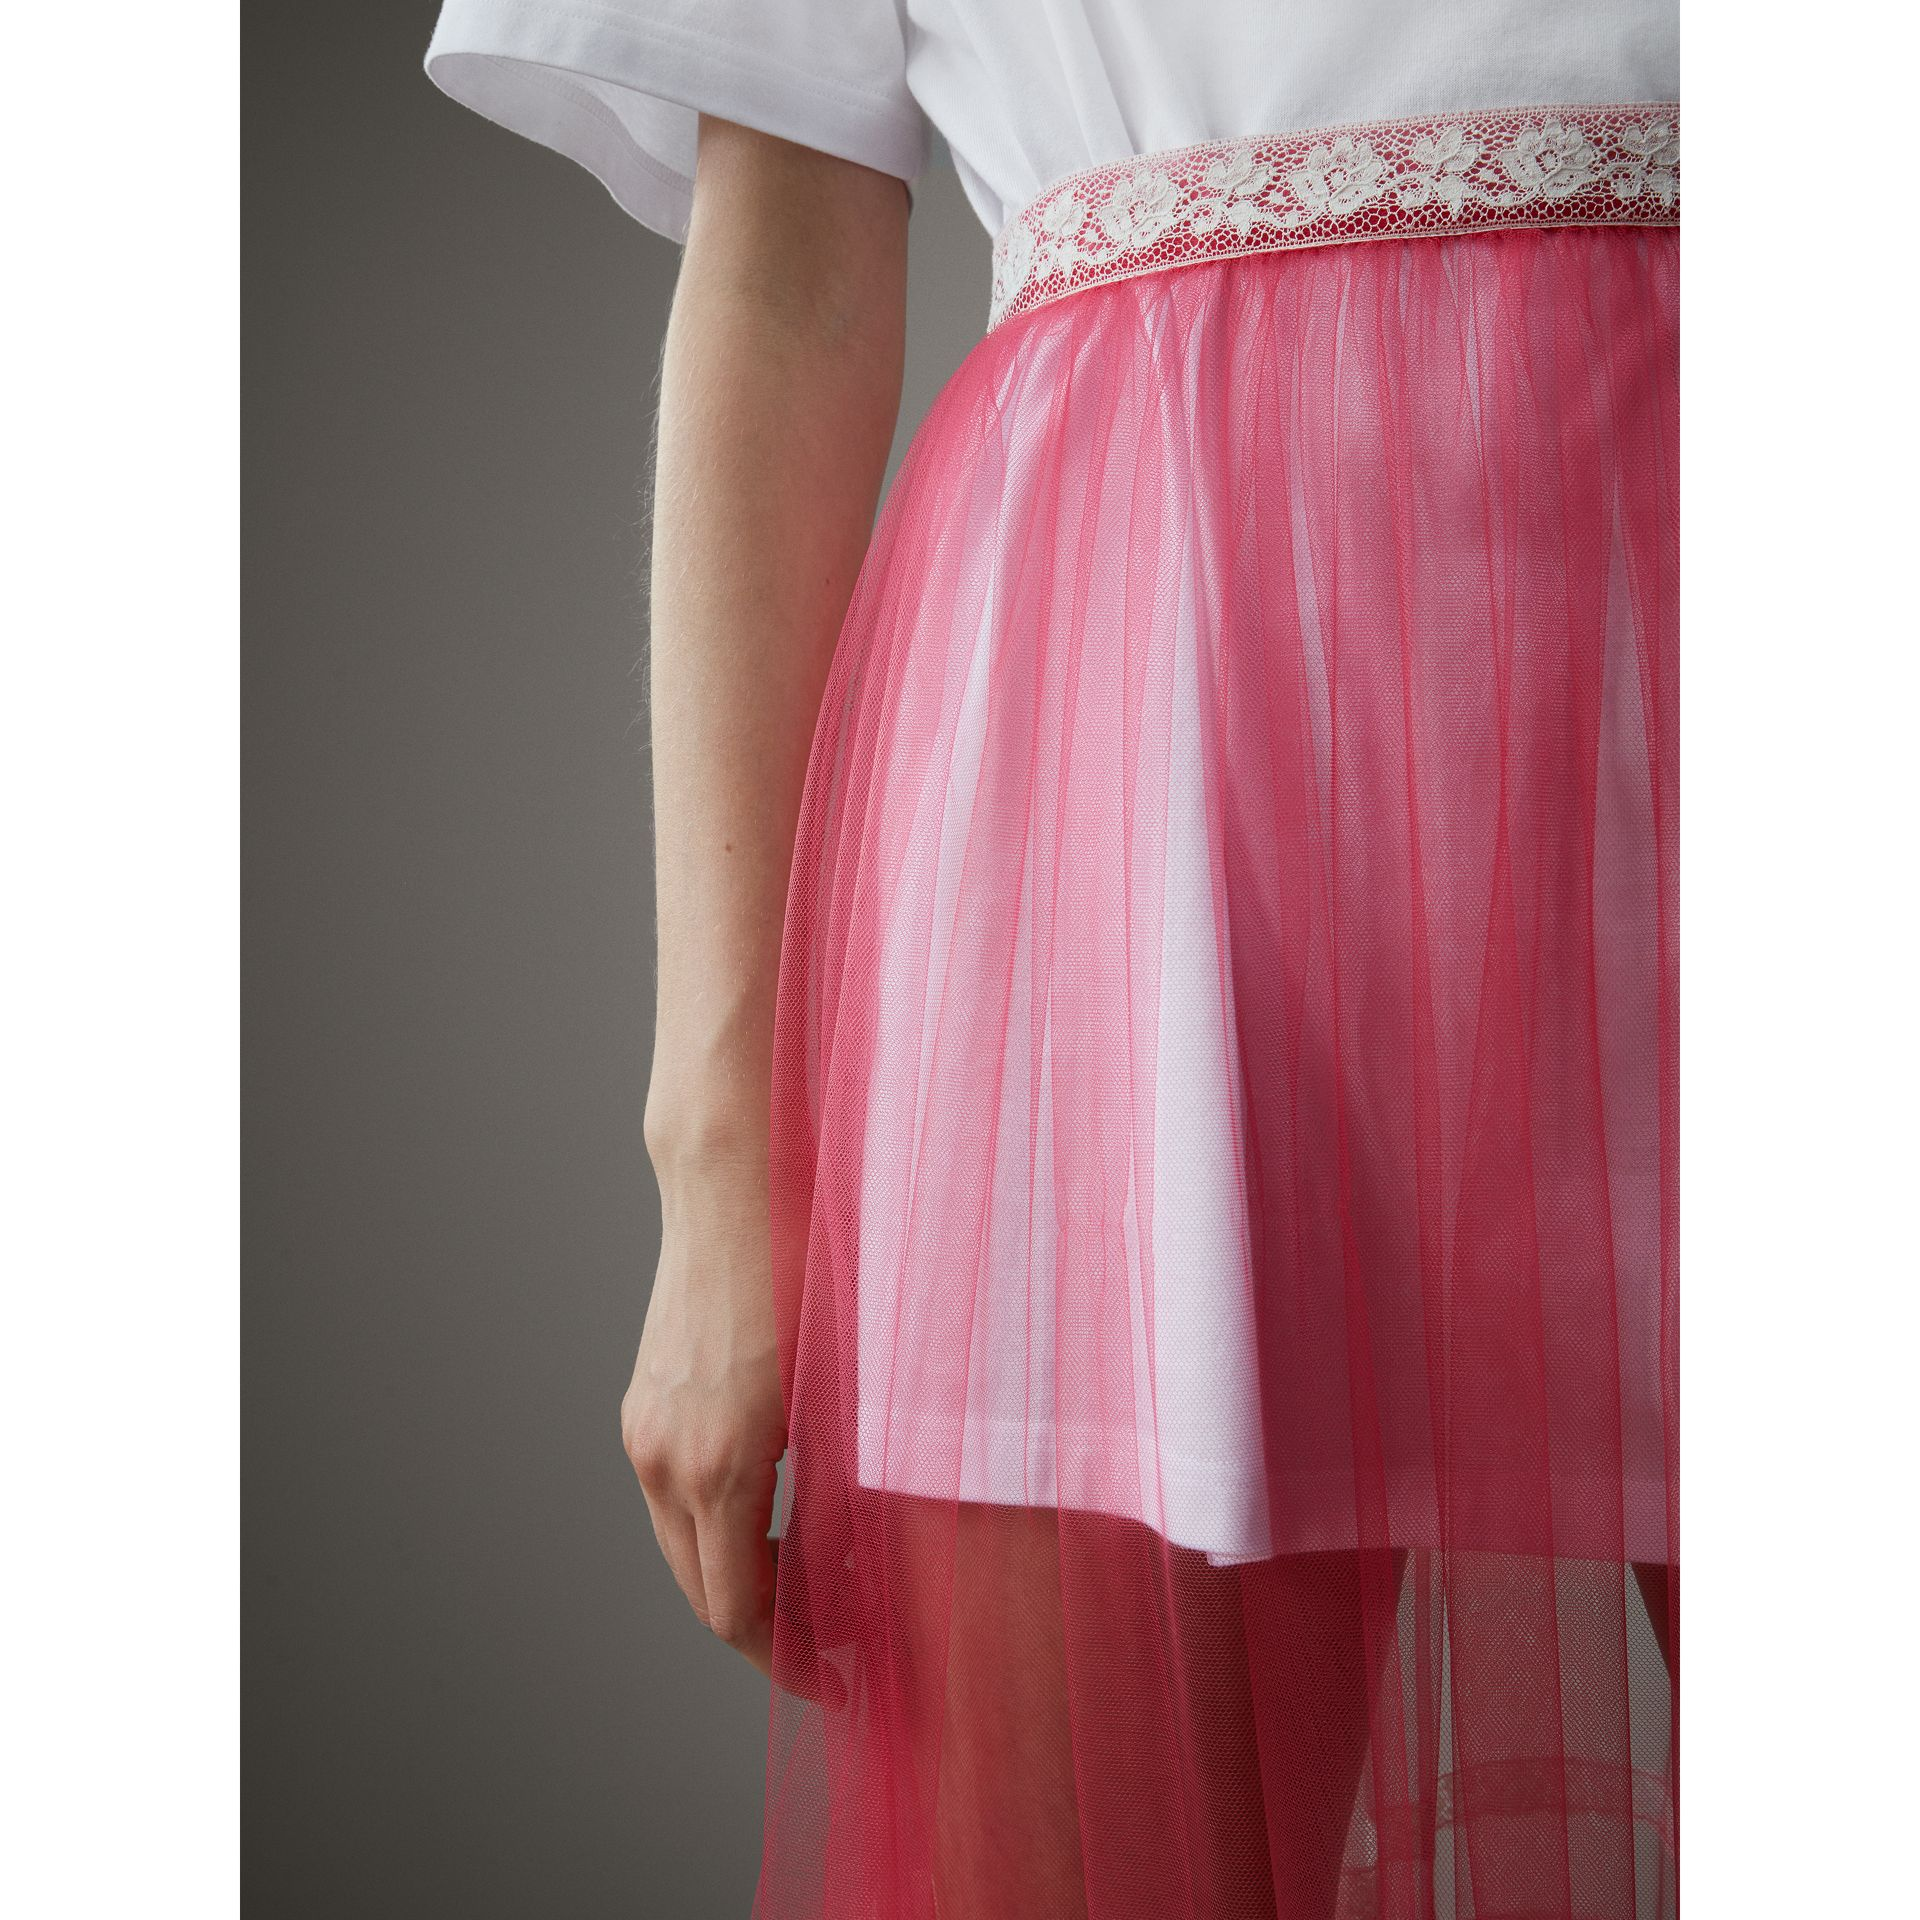 Floor-length English Lace Trim Tulle Skirt in Bright Pink - Women | Burberry Hong Kong - gallery image 1